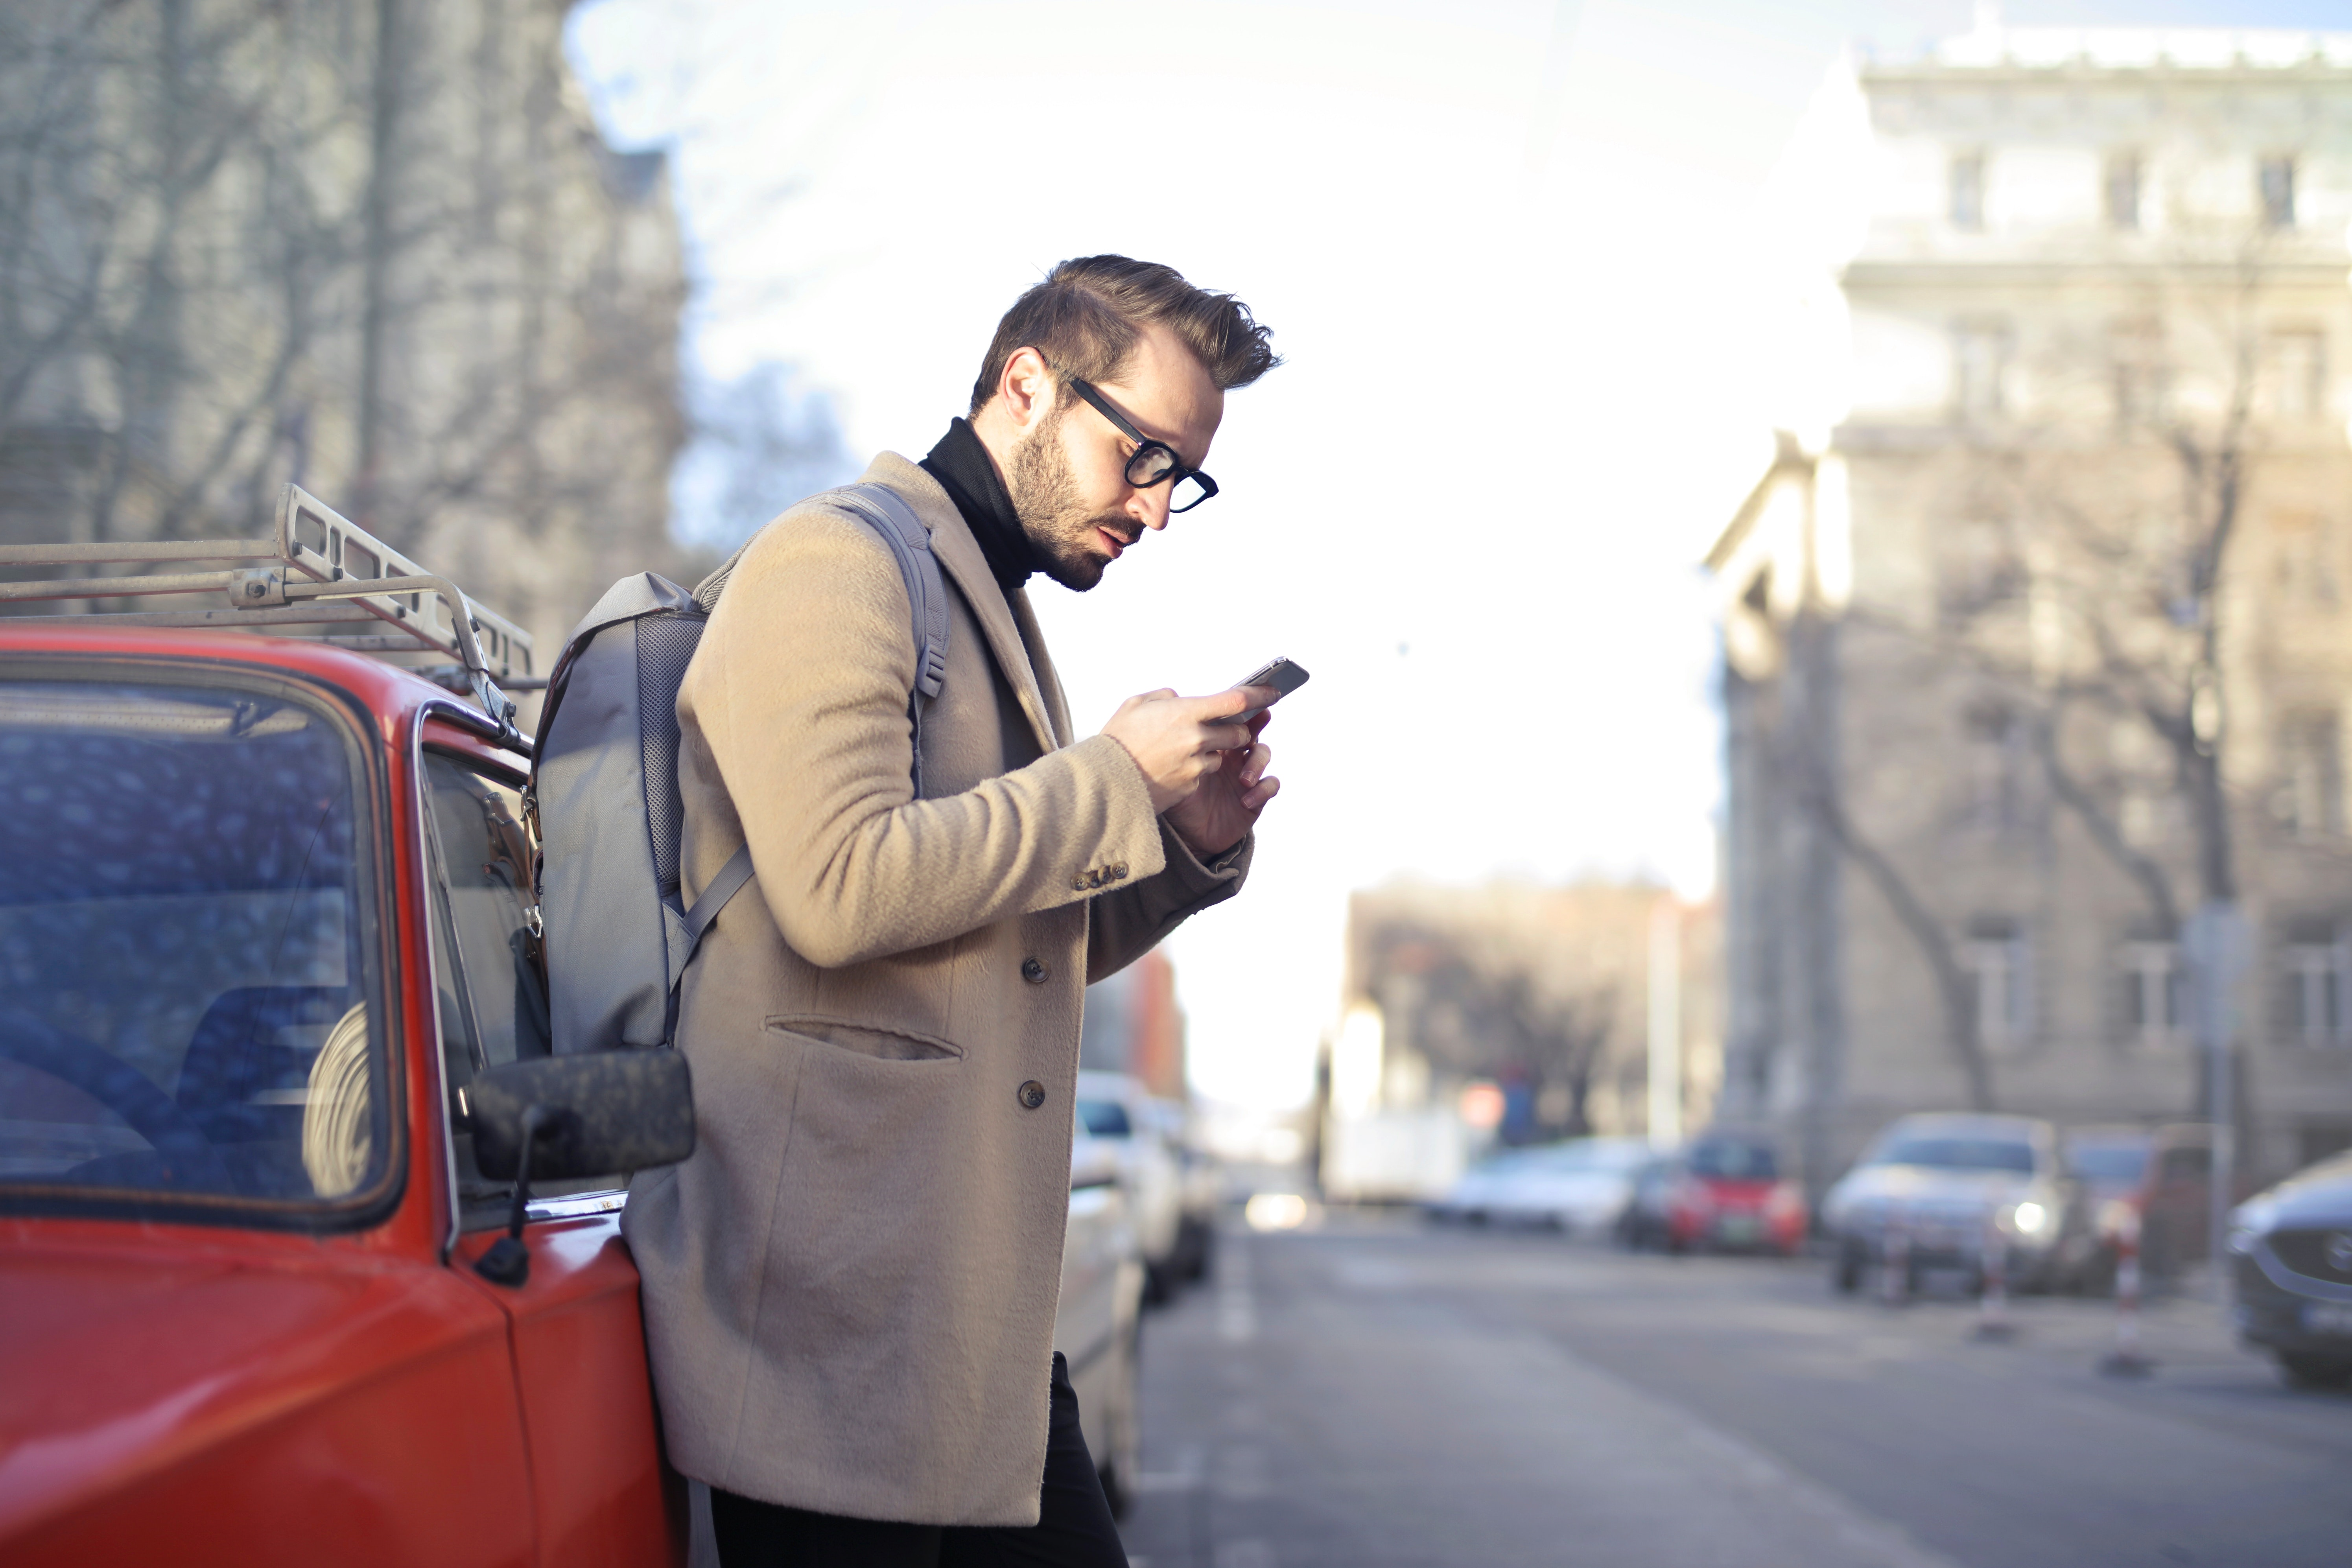 Man in beige coat holding phone leaning on red vehicle photo